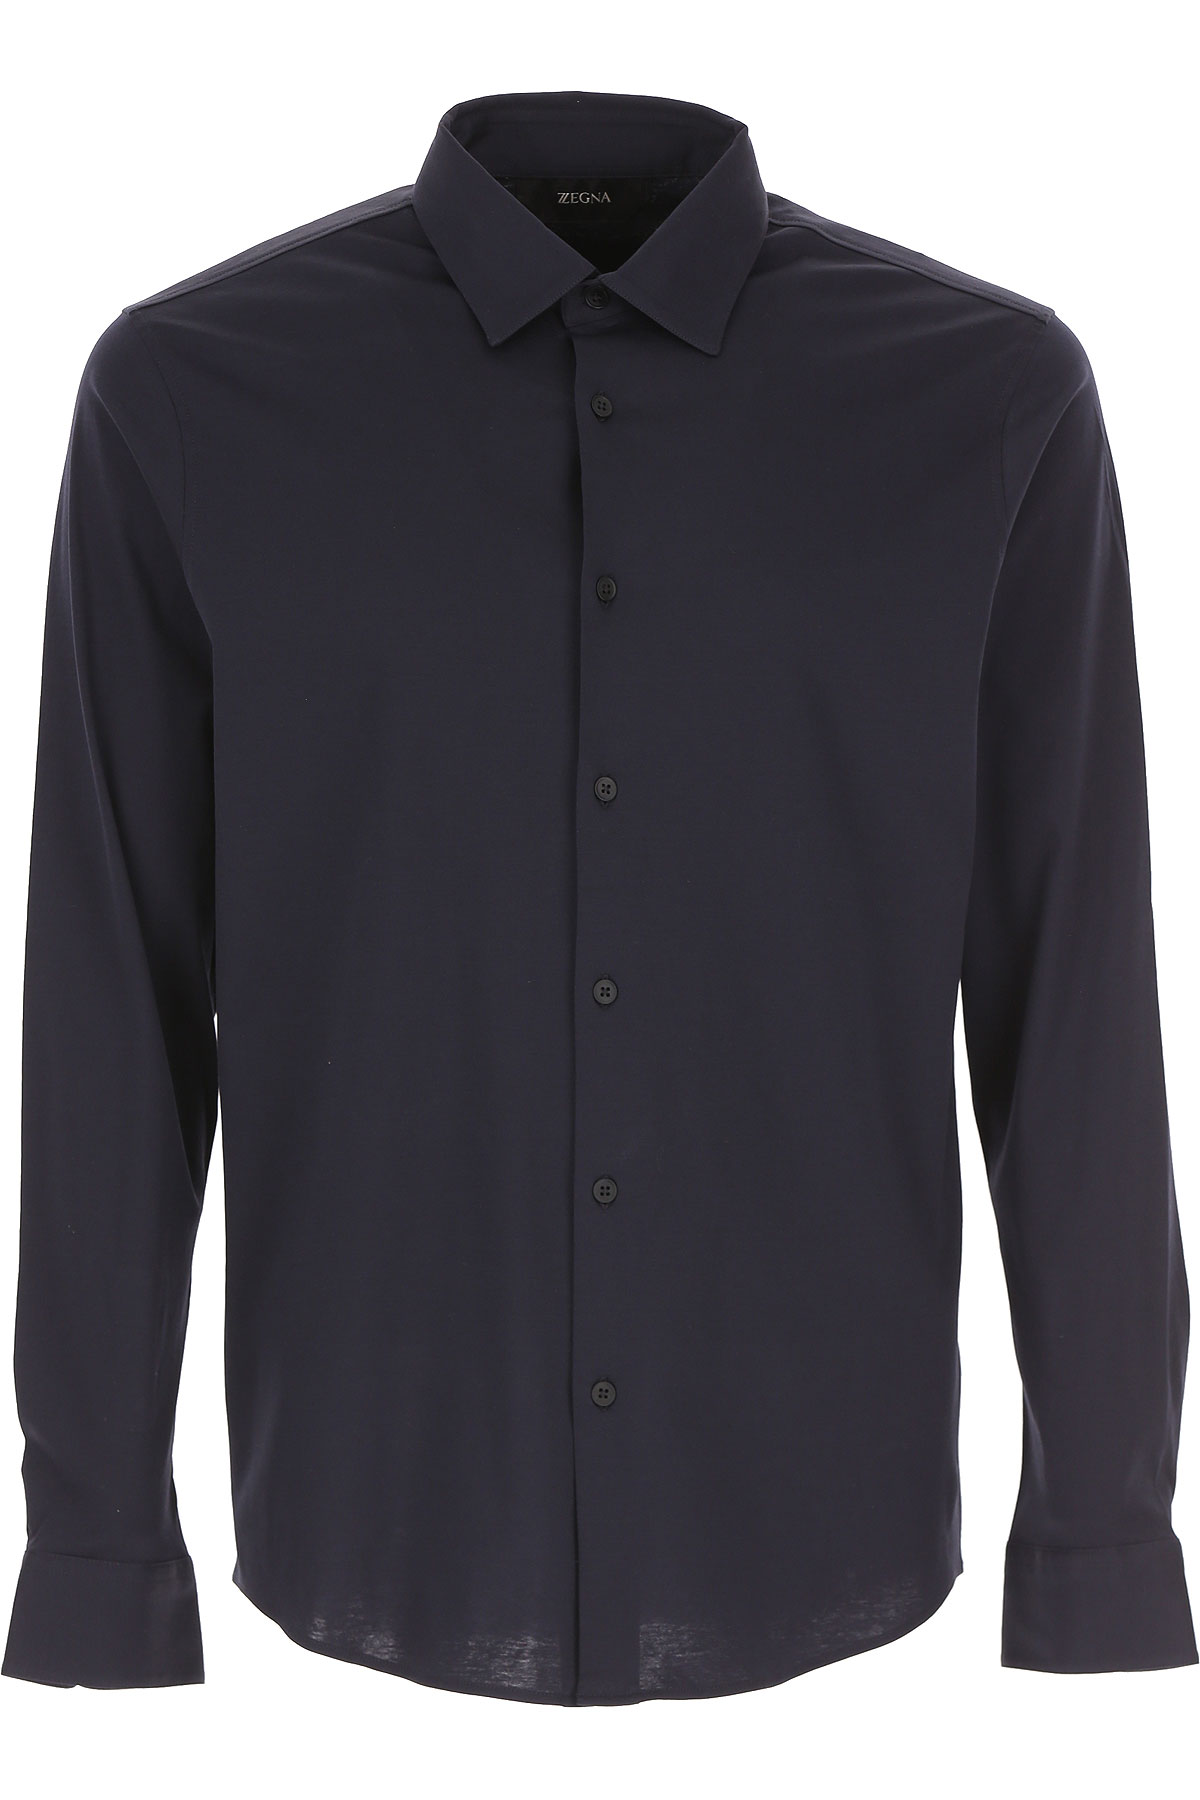 Ermenegildo Zegna Mens Clothing On Sale, Navy Blue, Cotton, 2019, L M S XL XXL XXXL